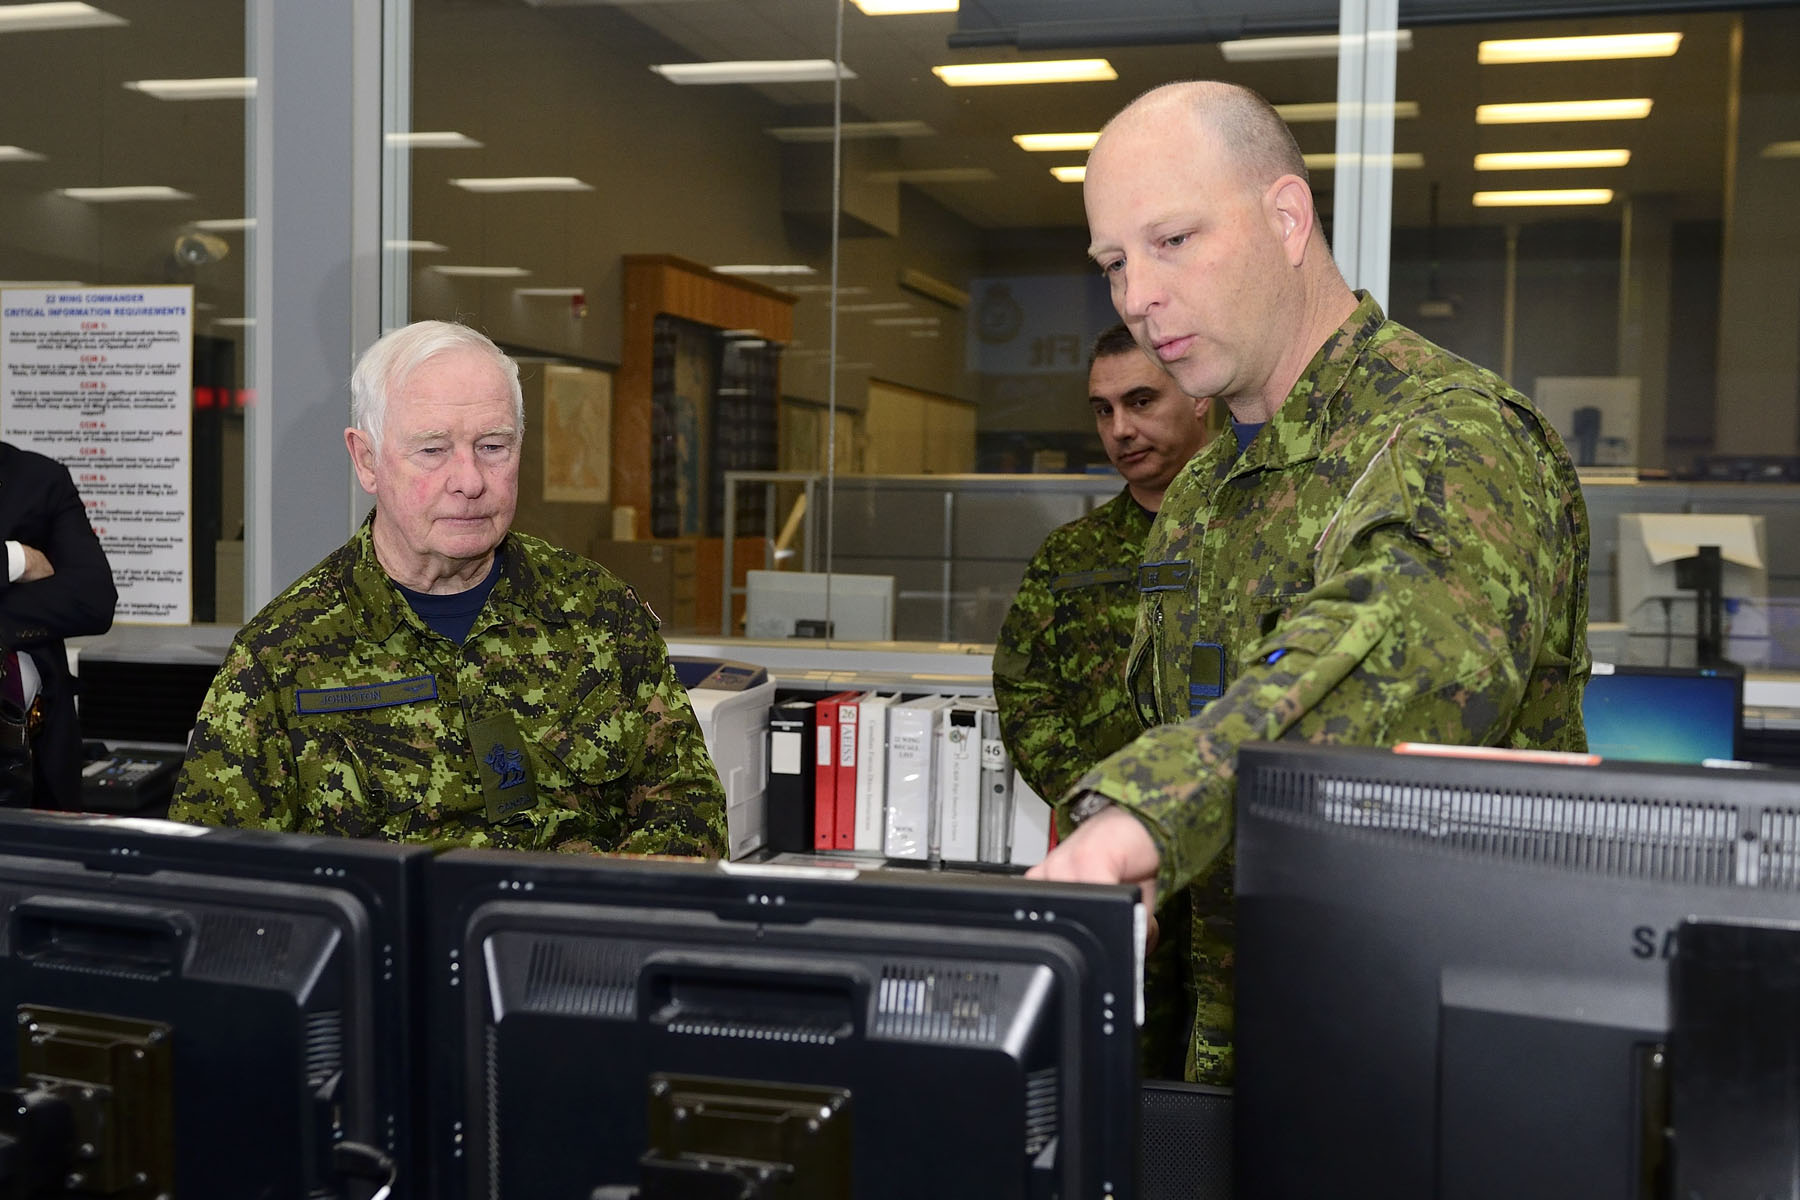 Following this, His Excellency toured the base including the Sector Air Operations Centre that is part of Canada's commitment with NORAD.